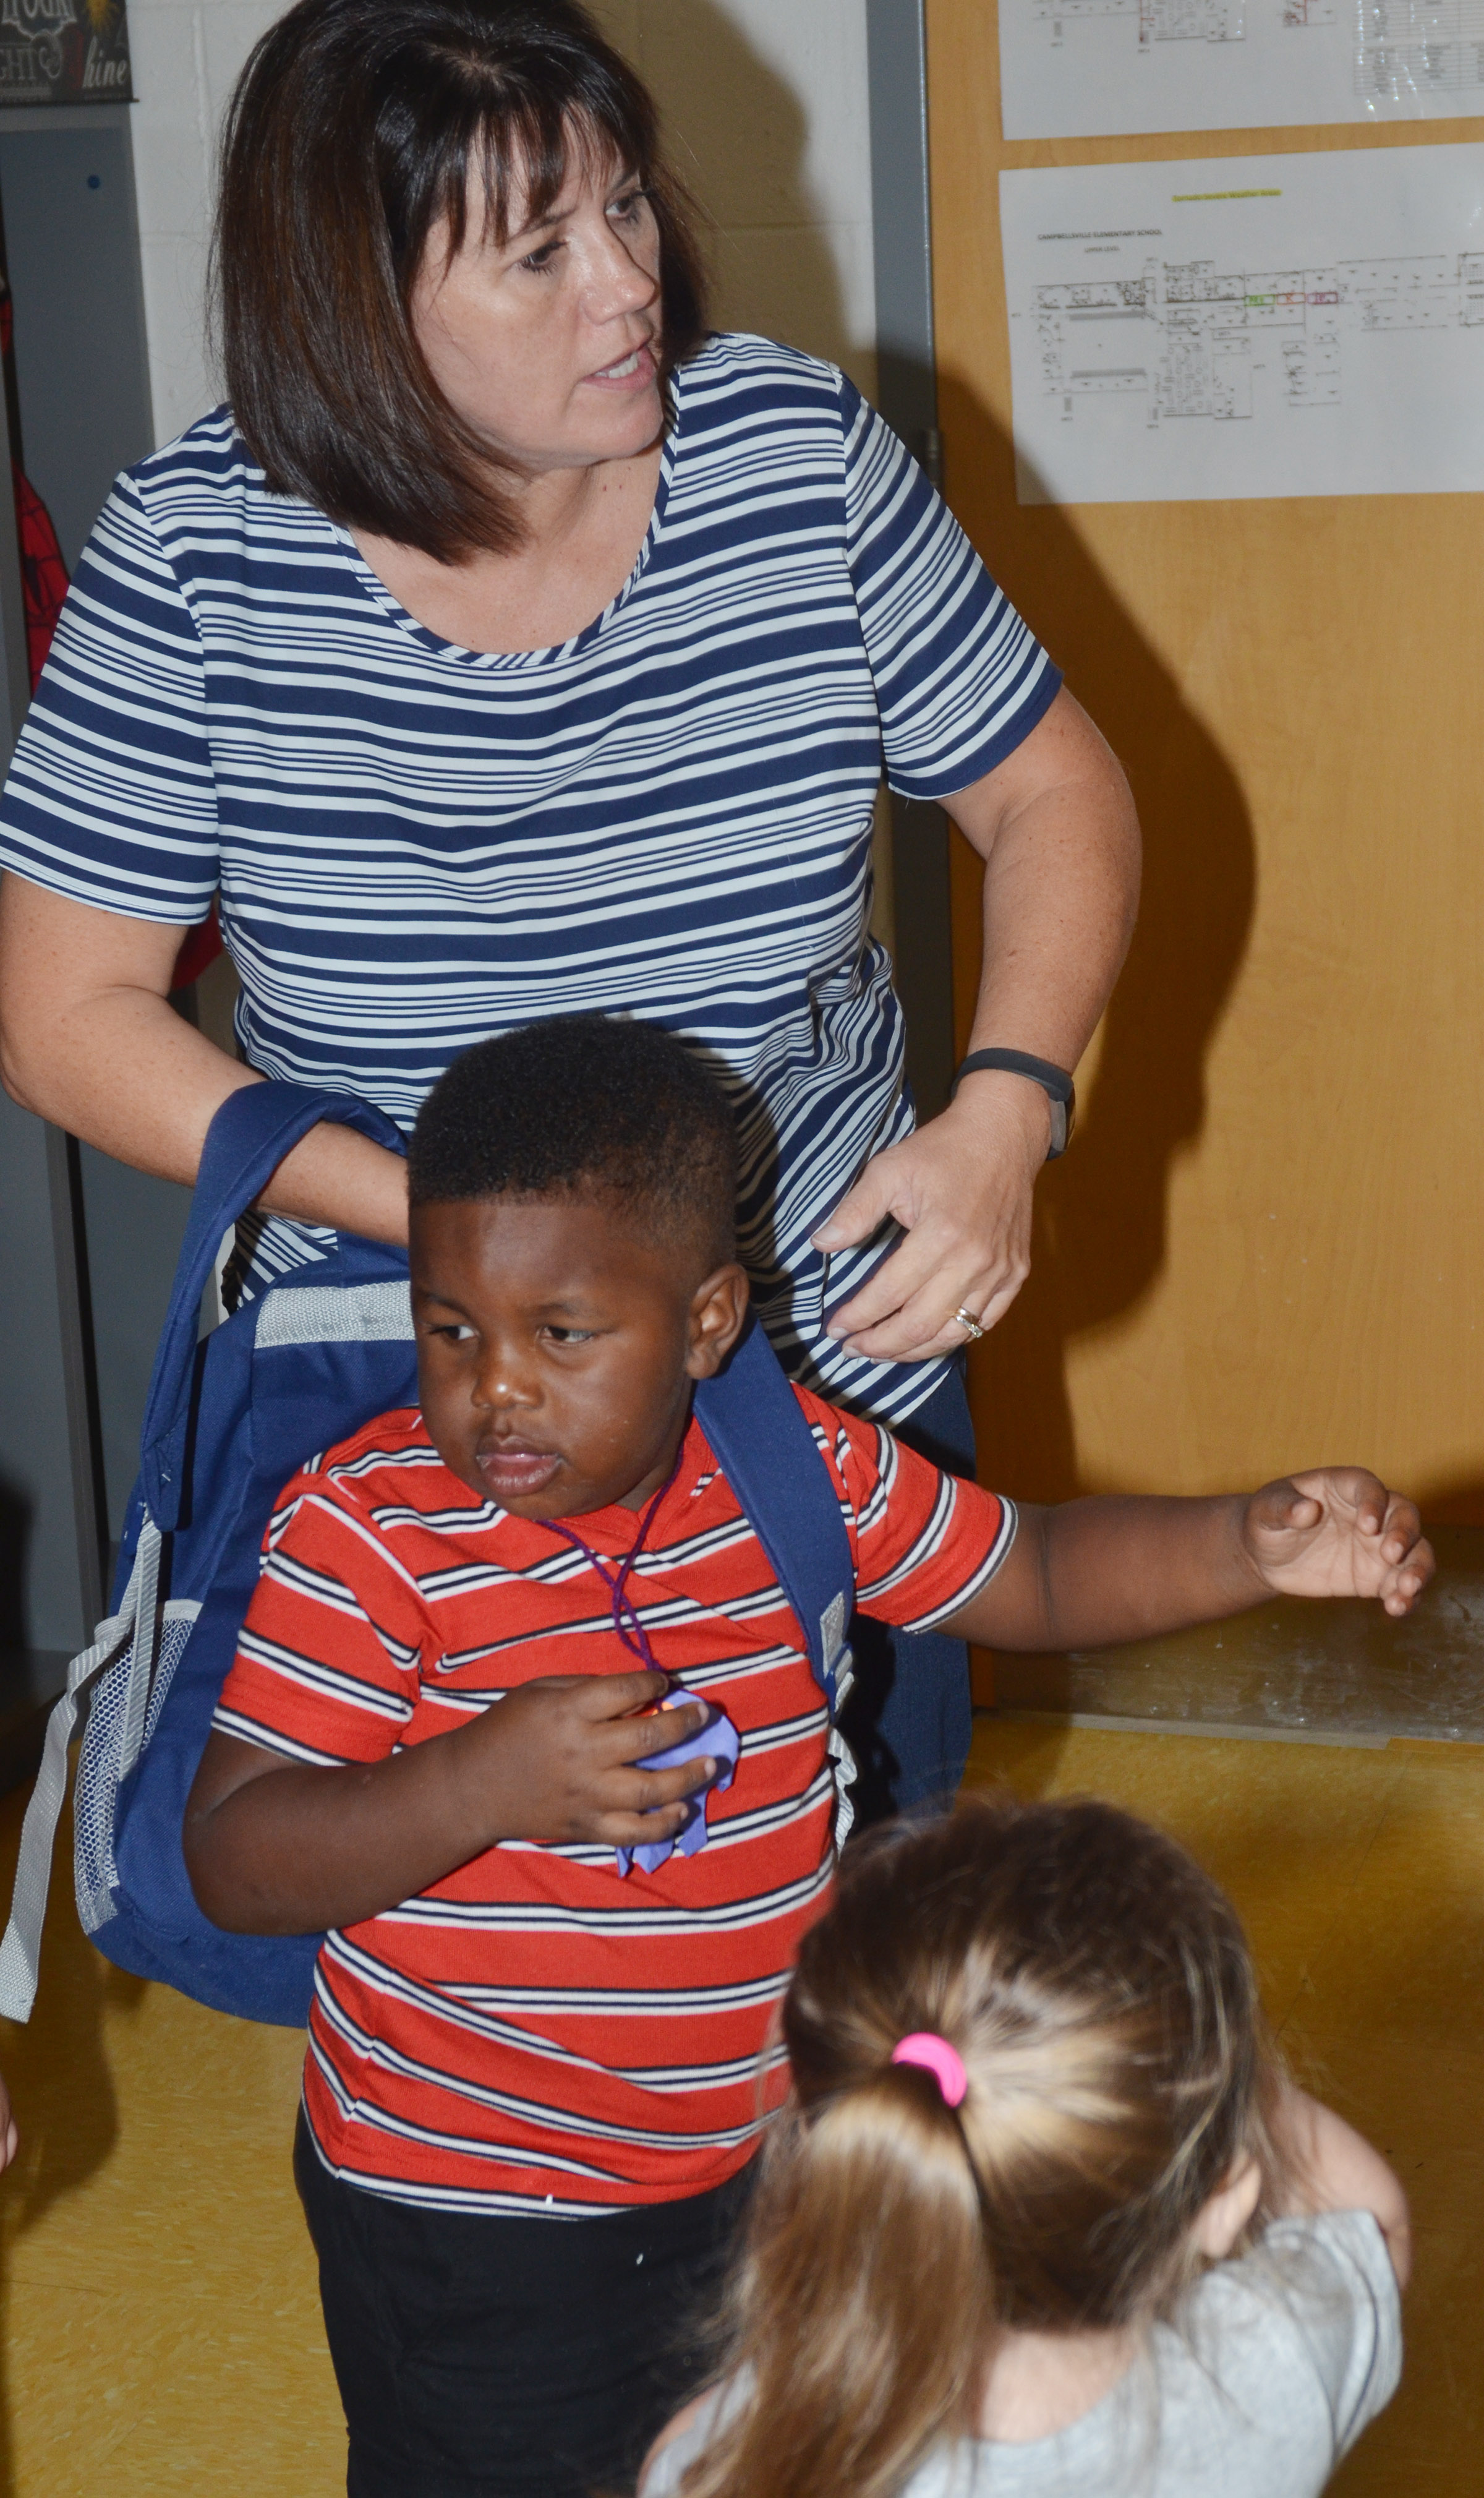 CES preschool teacher Denise Spencer helps student Kareem Smith put on his backpack as he prepares to go home after the first day of school.